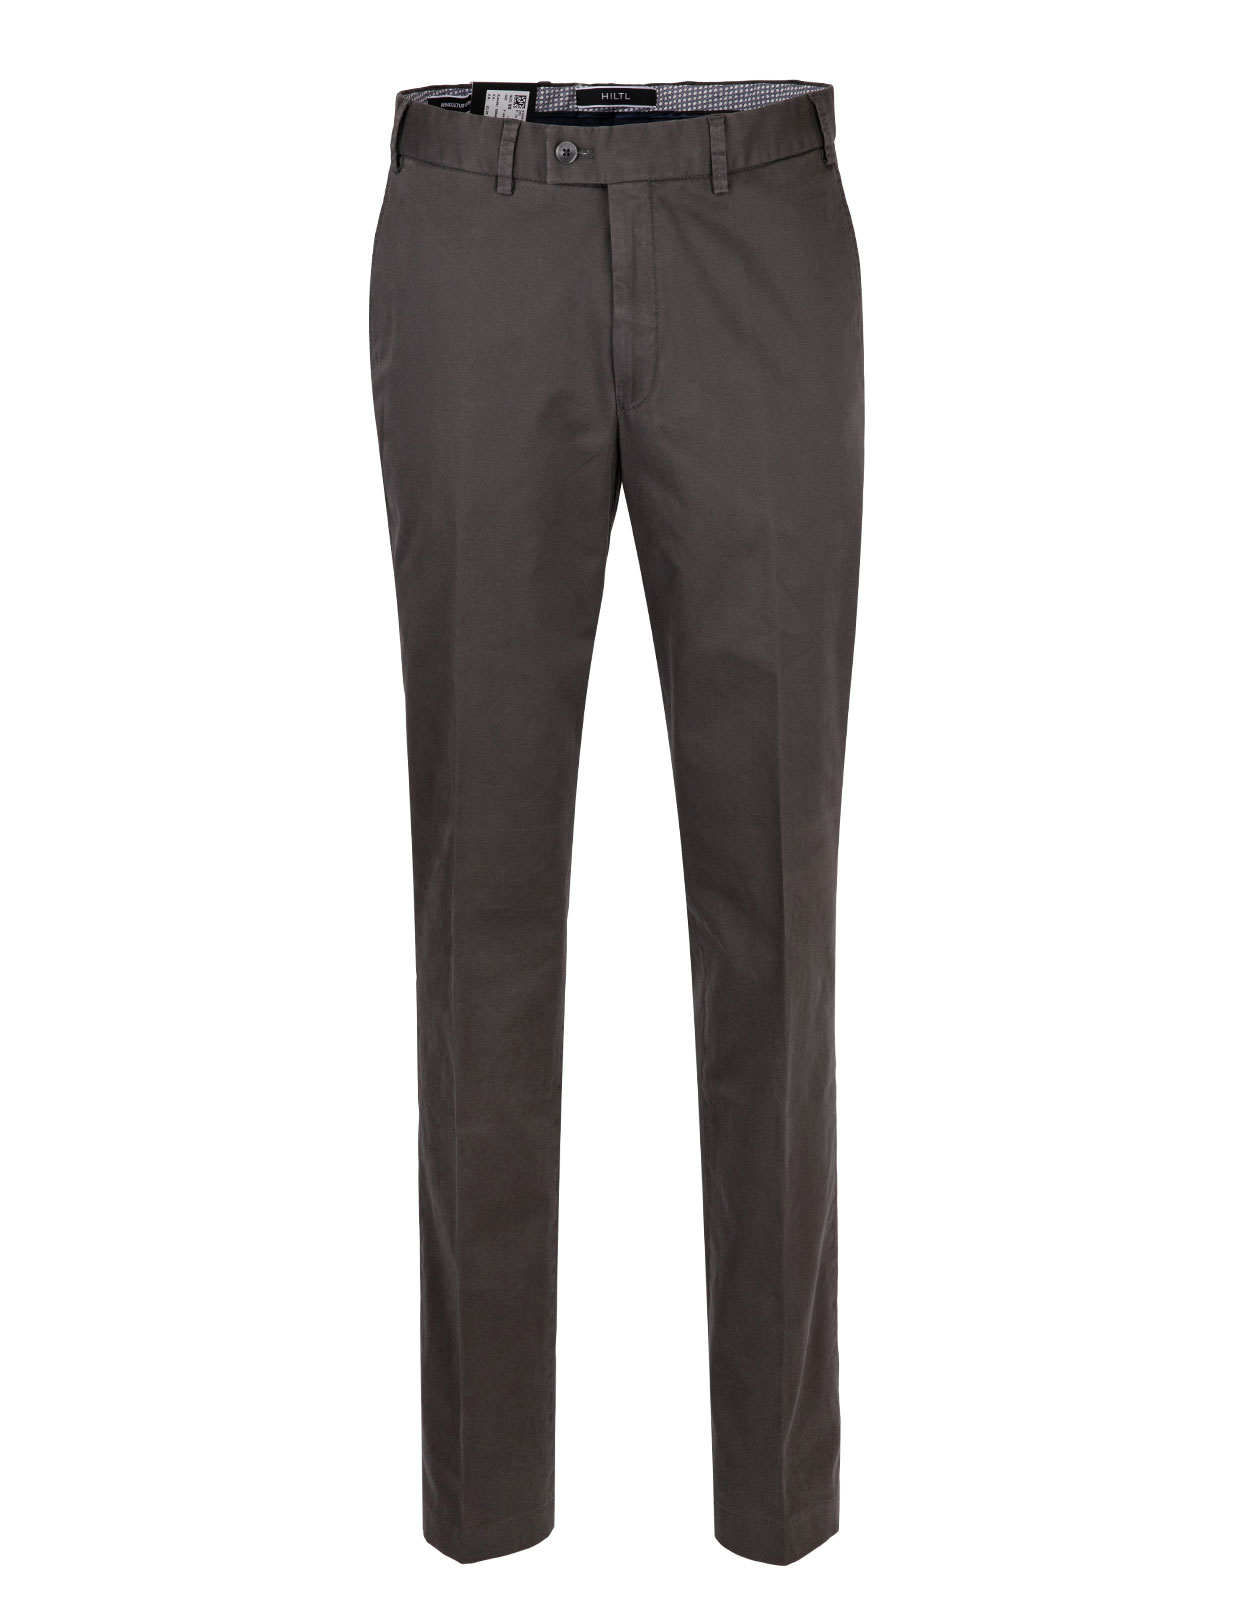 Parma Regular Fit Byxa Cotton Twill DkGrey